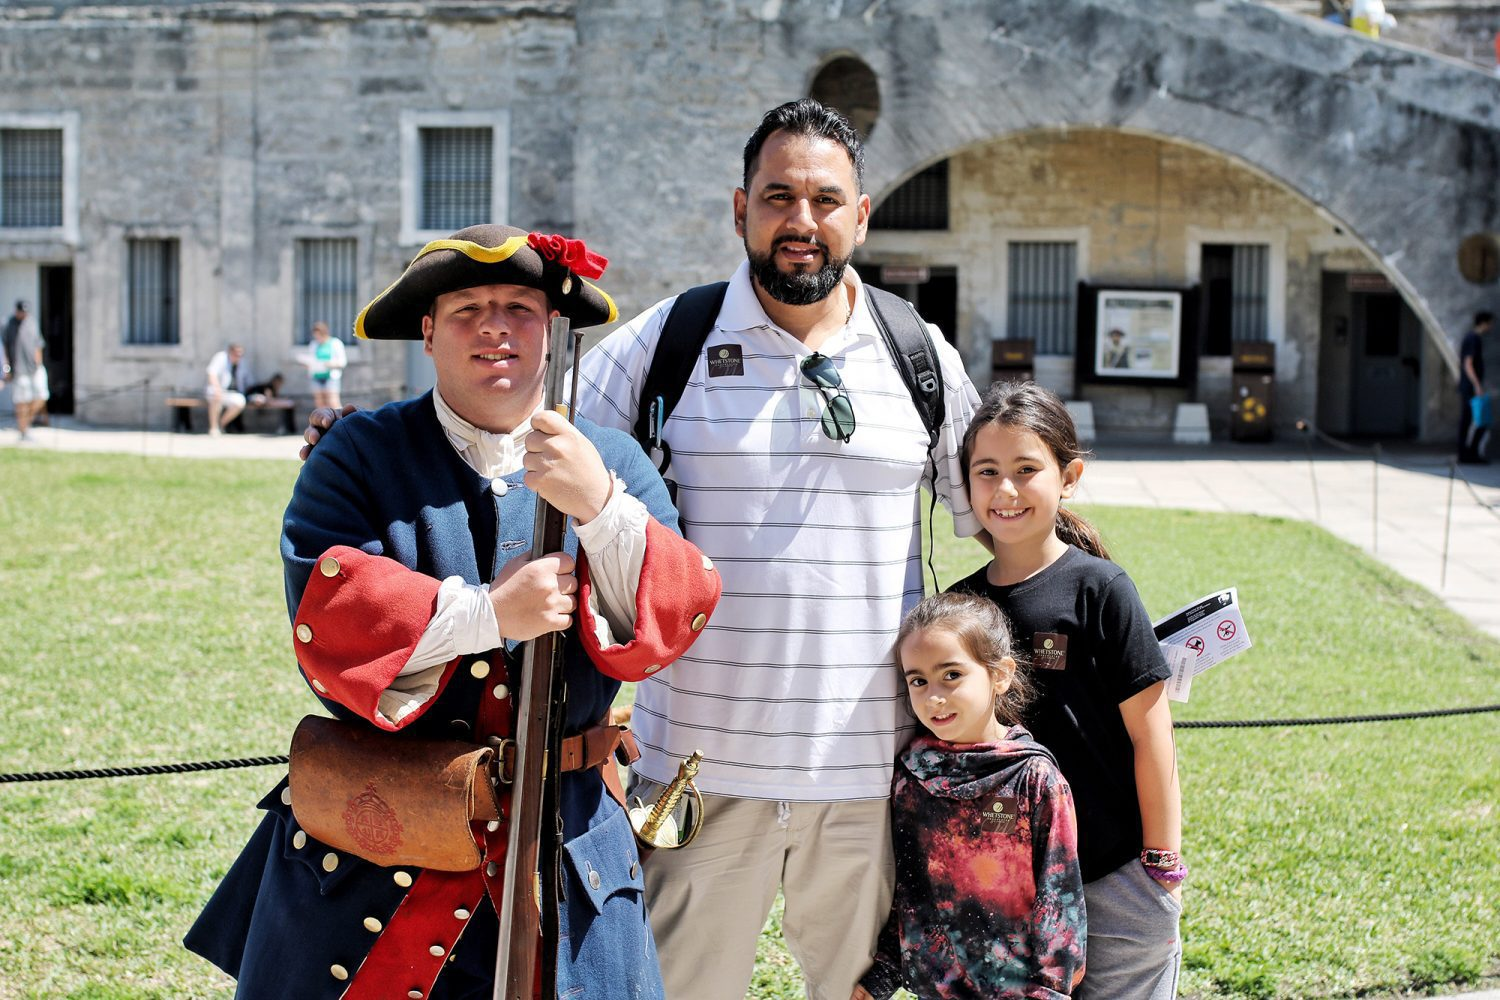 Castillo de San Marcos, National Monument, history of america, travel, travel blogger, travel blog, St Augustine, Historic District, Florida, St. Augustine, saint augustine, st. augustine attractions, things to do in st. augustine, top attractions st. augustine, things to do with kids in st. augustine, florida tourist attraction, things to do in florida, 2018